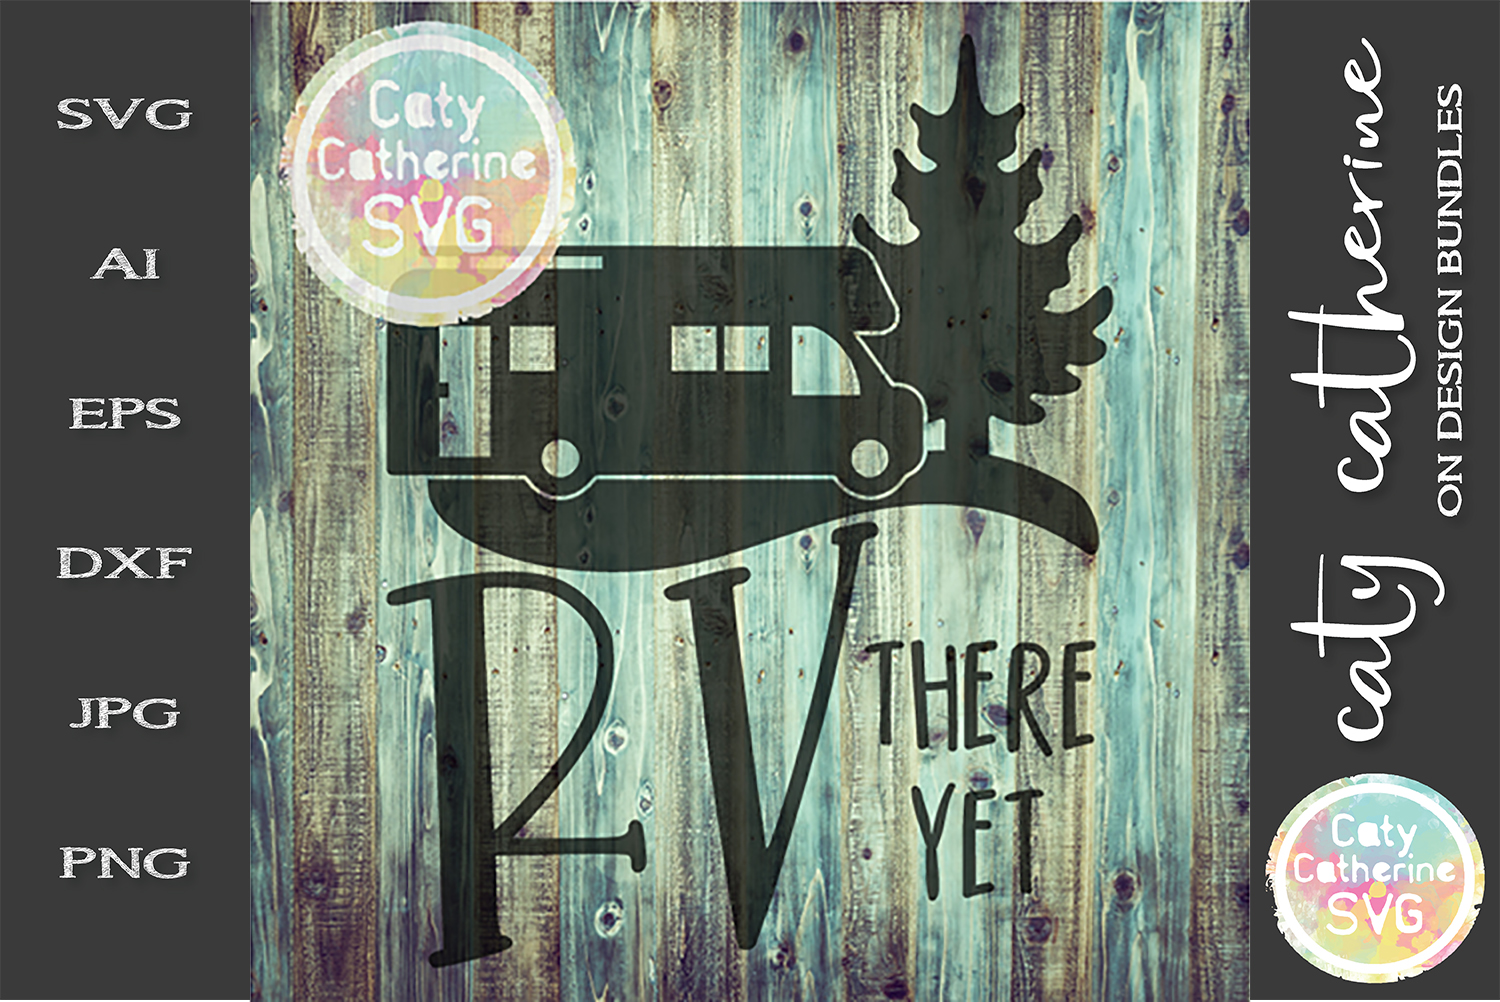 RV There Yet SVG Camping Cut File example image 1